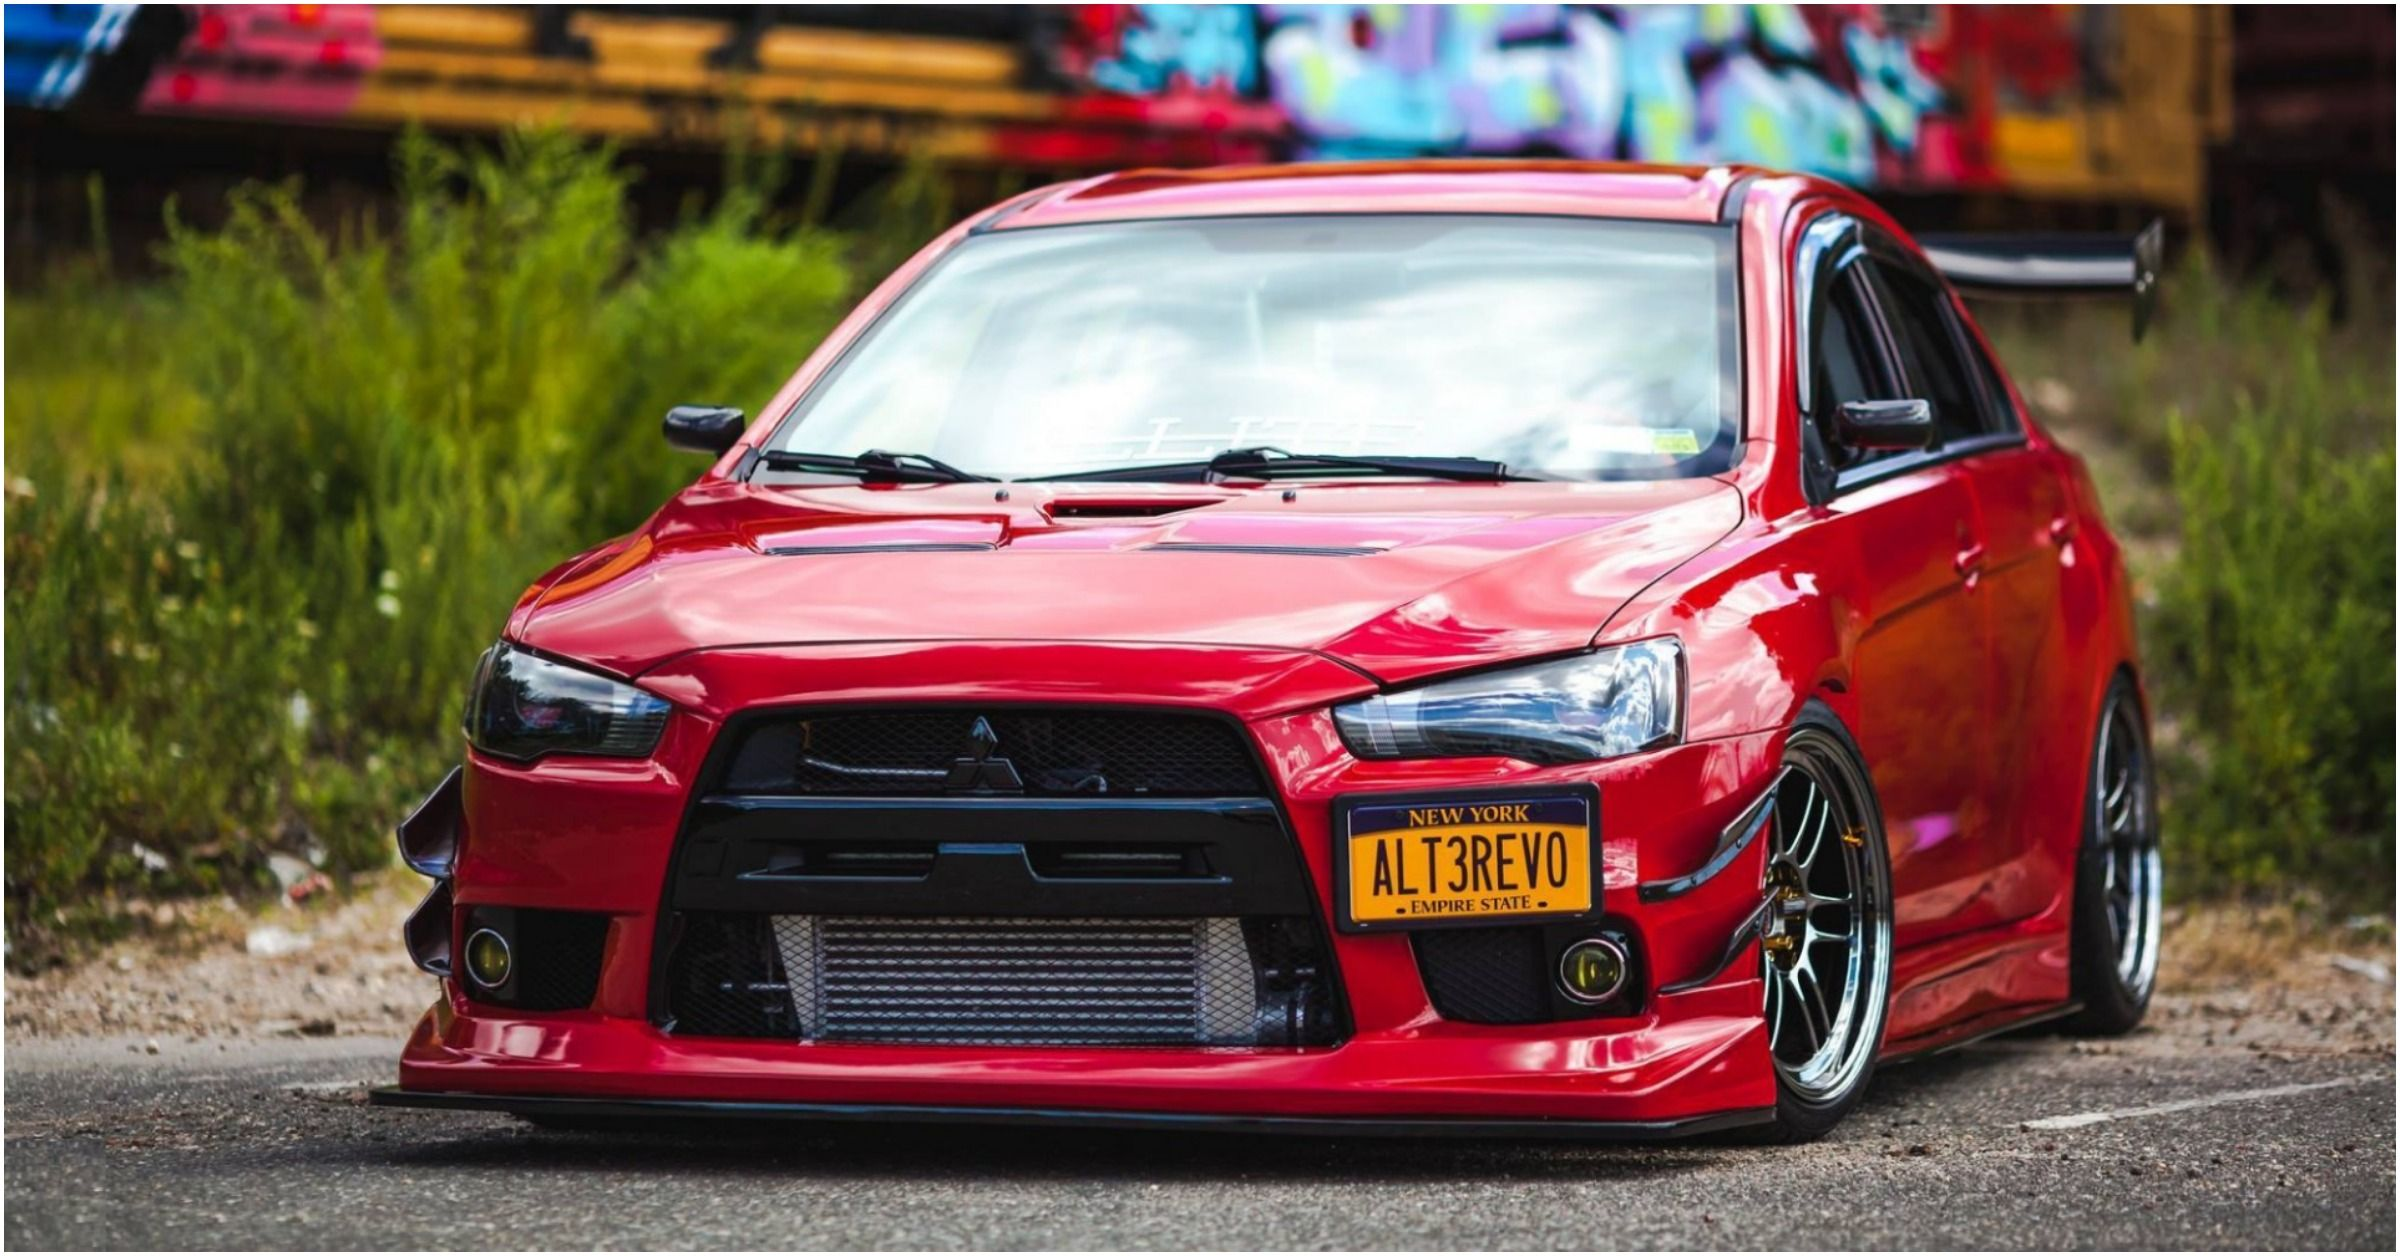 15 Things You Forgot About The Mitsubishi Lancer Evo Hotcars